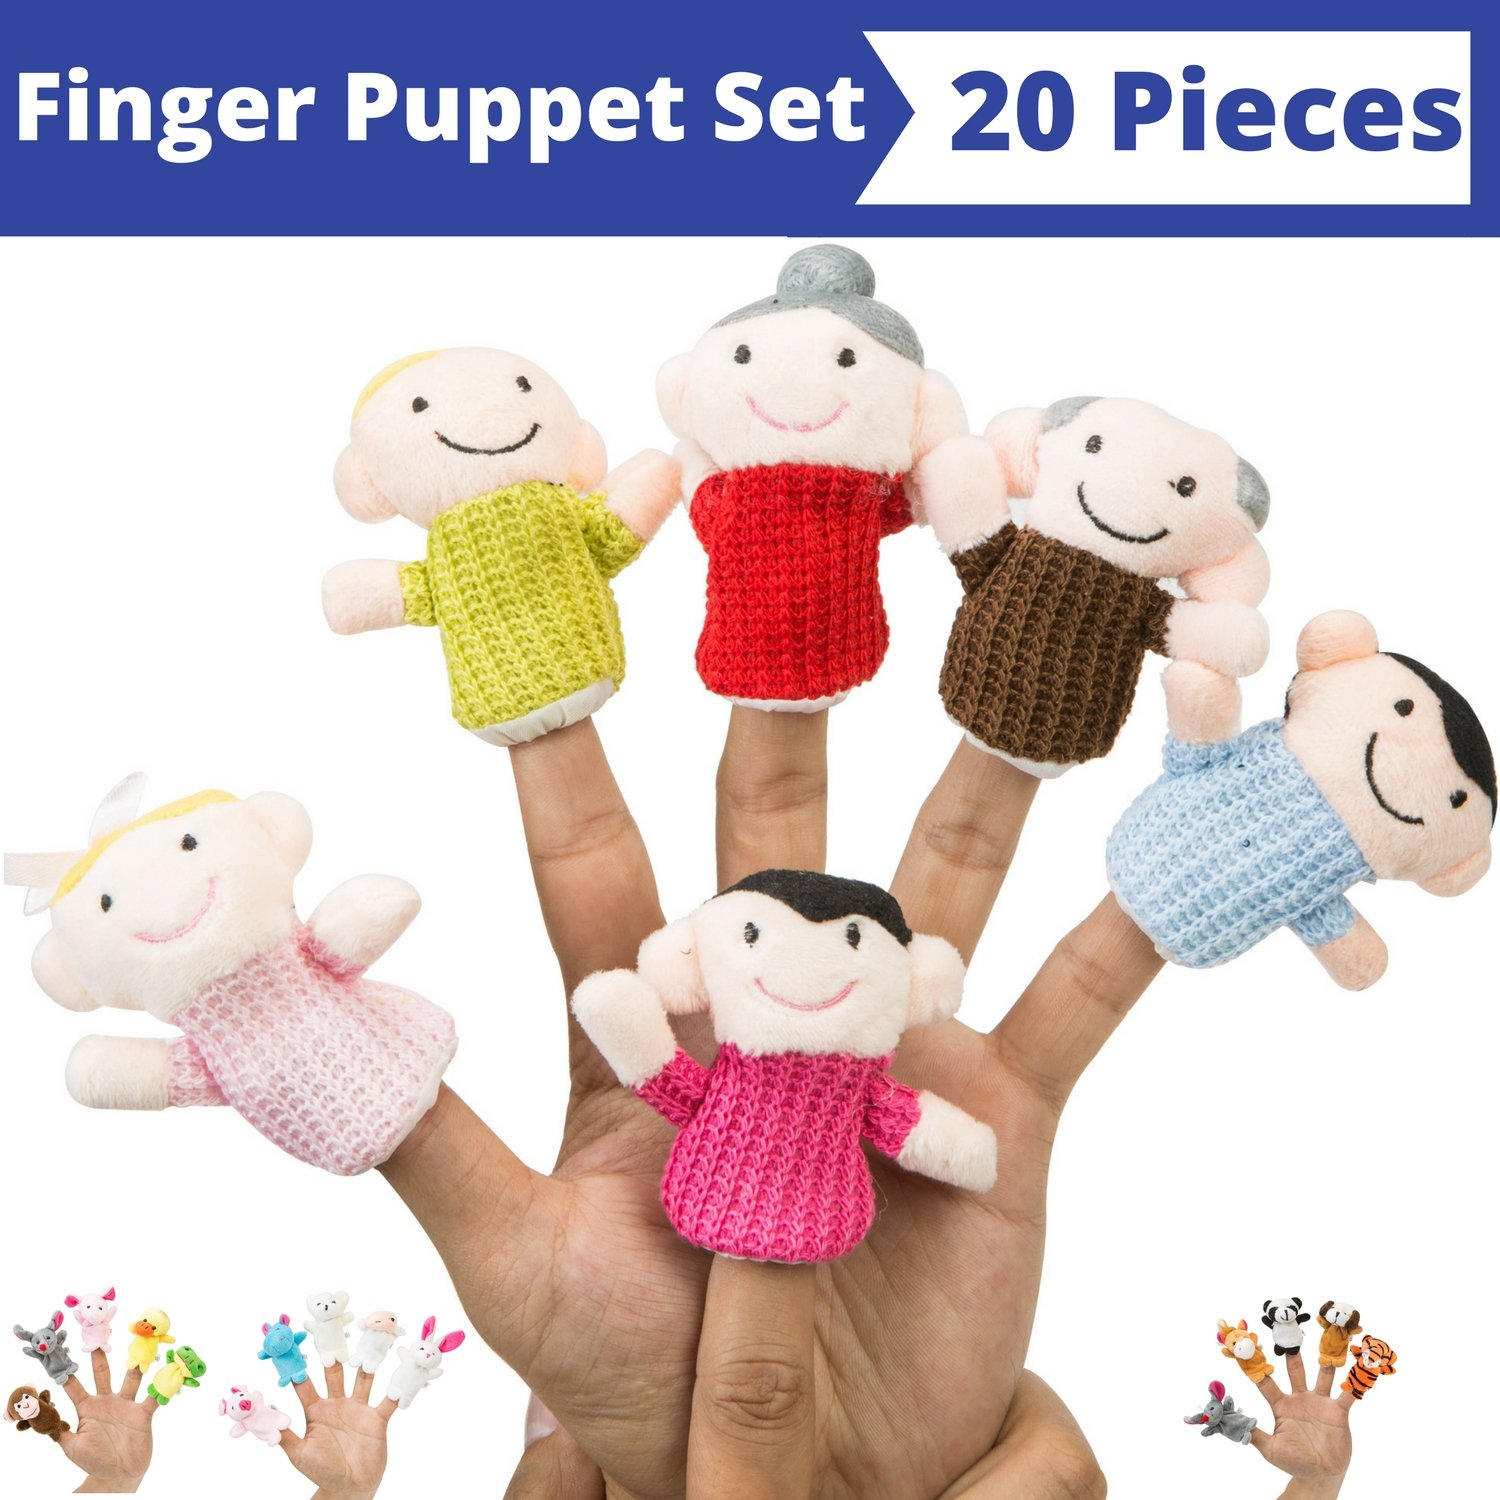 Finger Puppet Set (20-Piece), 6 Family Member Finger Puppets,14 Animal Finger Puppets - Great for Storytelling, Role-playing, Teaching and Fun - by Better Line